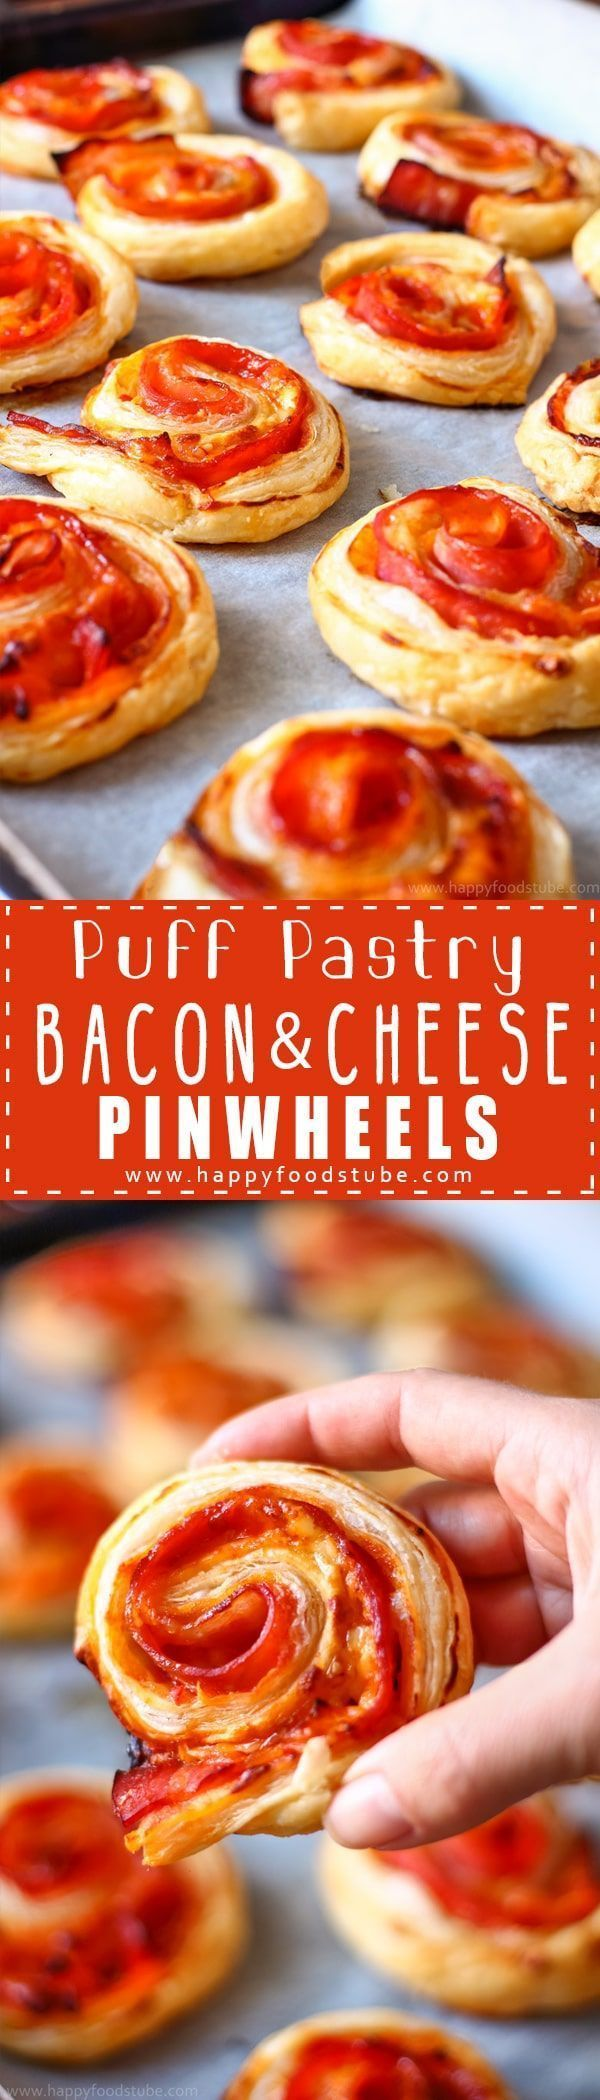 Puff Pastry Bacon Pinwheels with Cheddar ~ Easy and fast Puff Pastry Bacon Pinwheels with Cheddar Cheese. Homemade party food ideas. Perfect for parties and family gatherings. Only 5 ingredient and ready in 25 minutes via @happyfoodstube